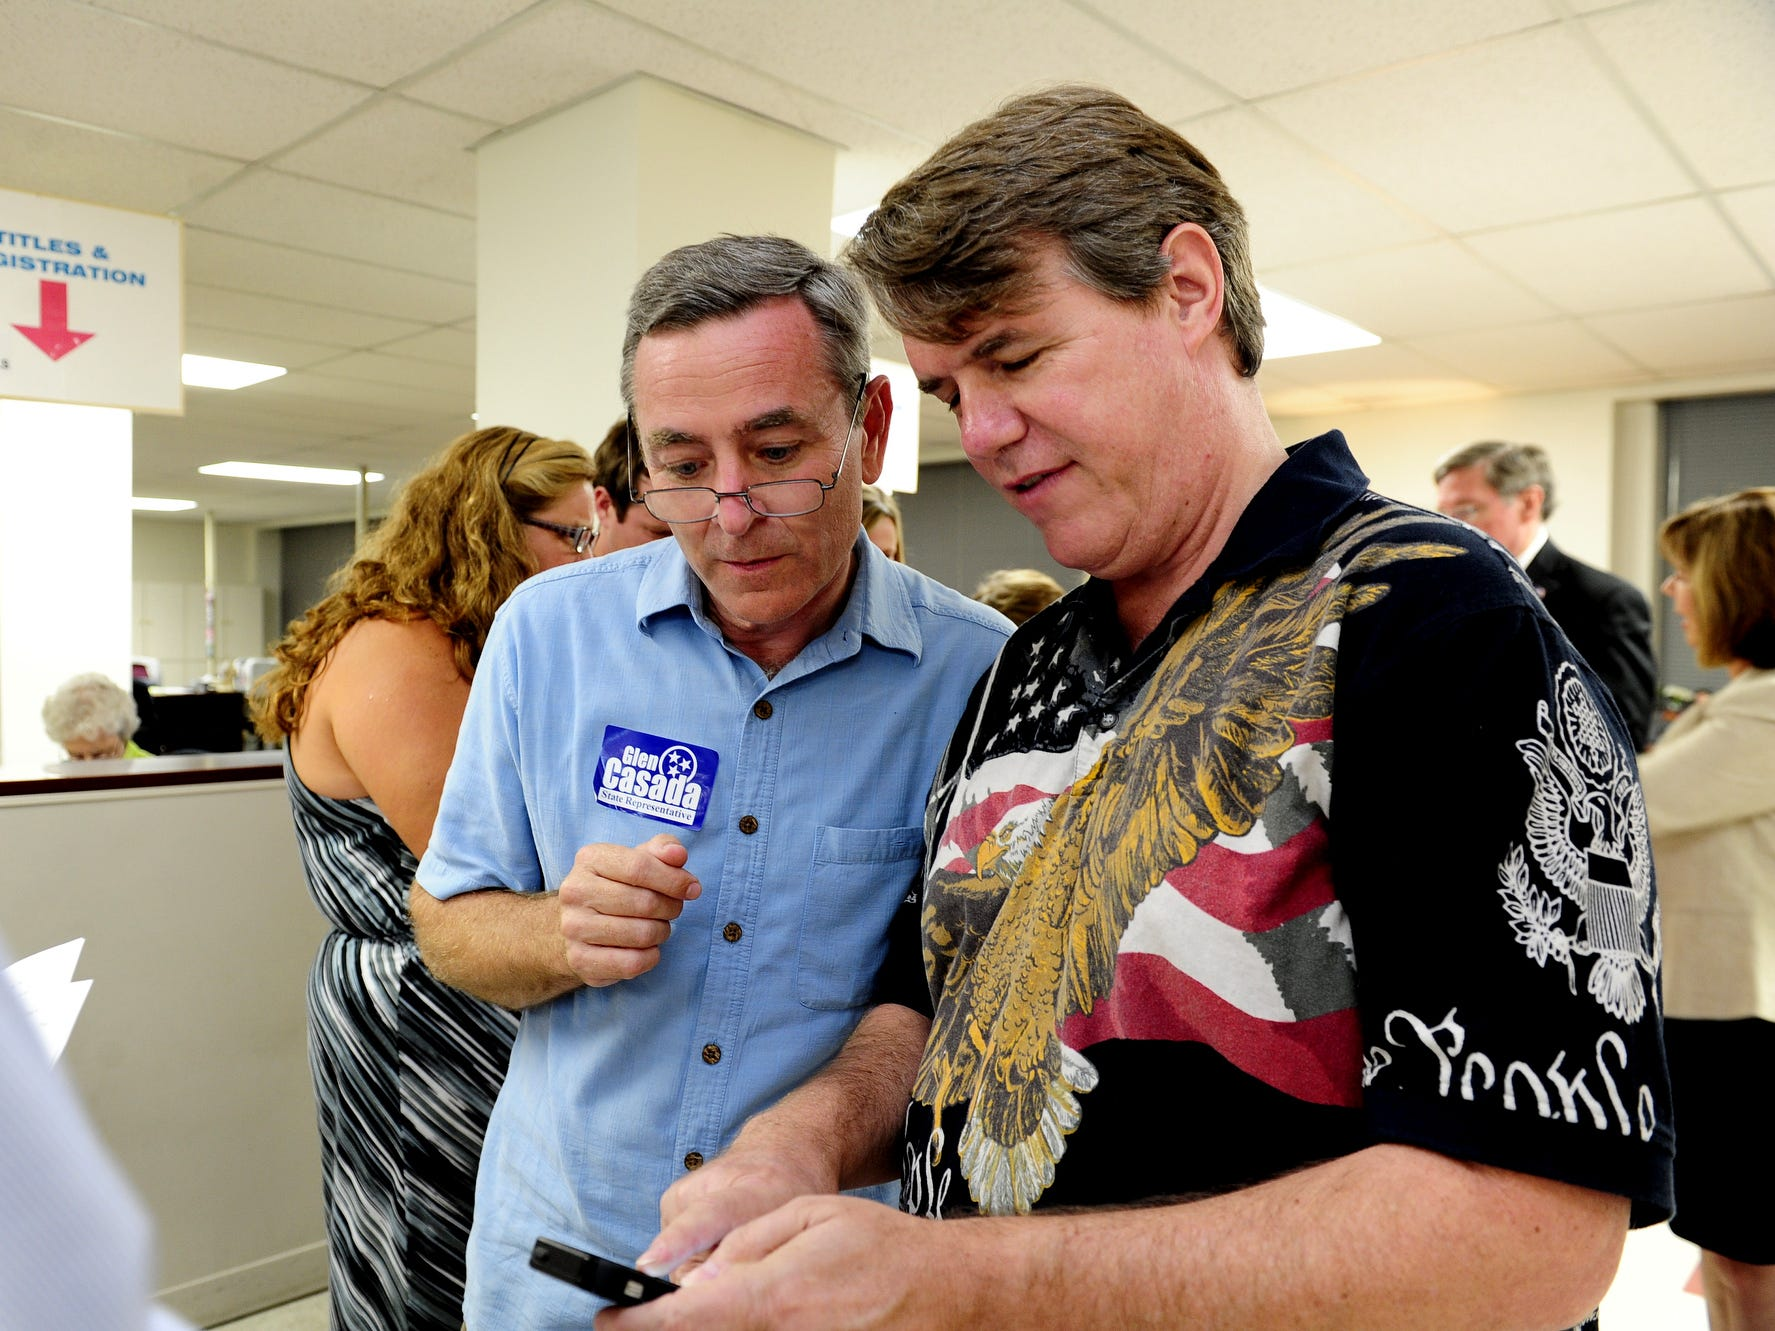 State Rep. Glen Casada, left, looks over early voting returns with Williamson County Commissioner Jeff Ford on Aug. 7, 2014. Casada, R-Franklin, held onto his District 63 seat for a seventh term.